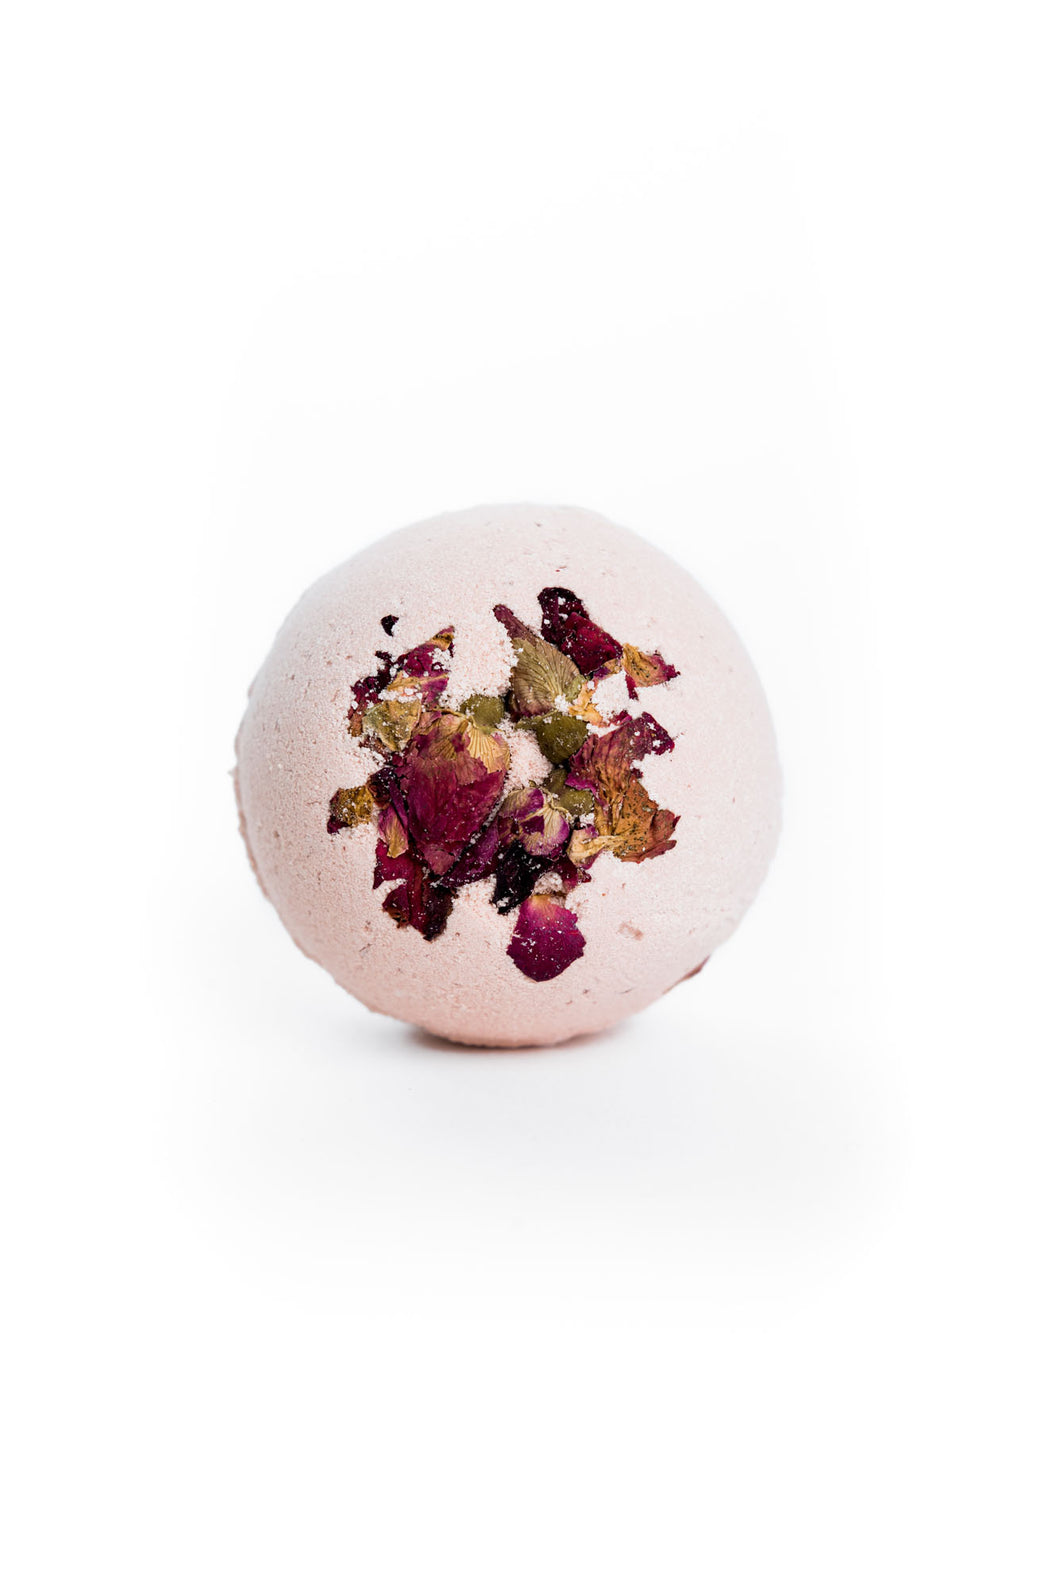 Rose bath bomb from The Good Rub